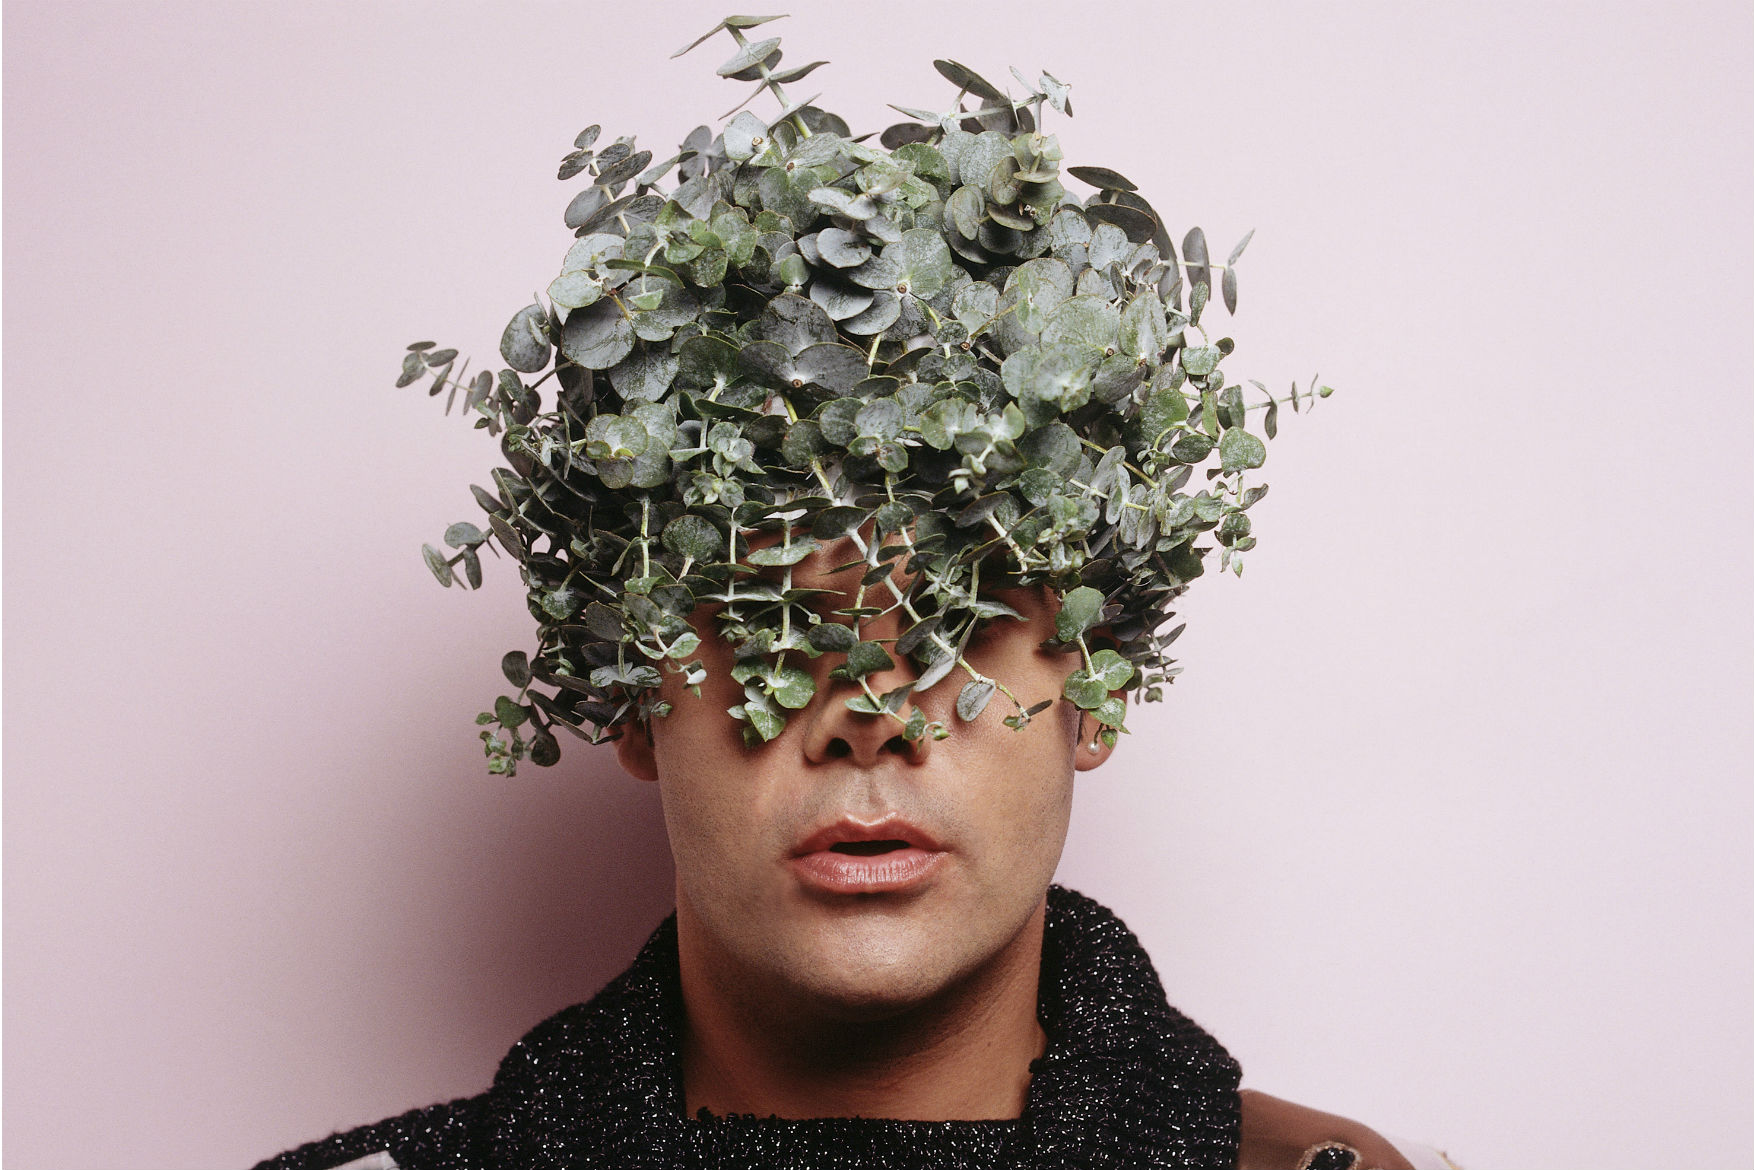 Man with plants half covering face